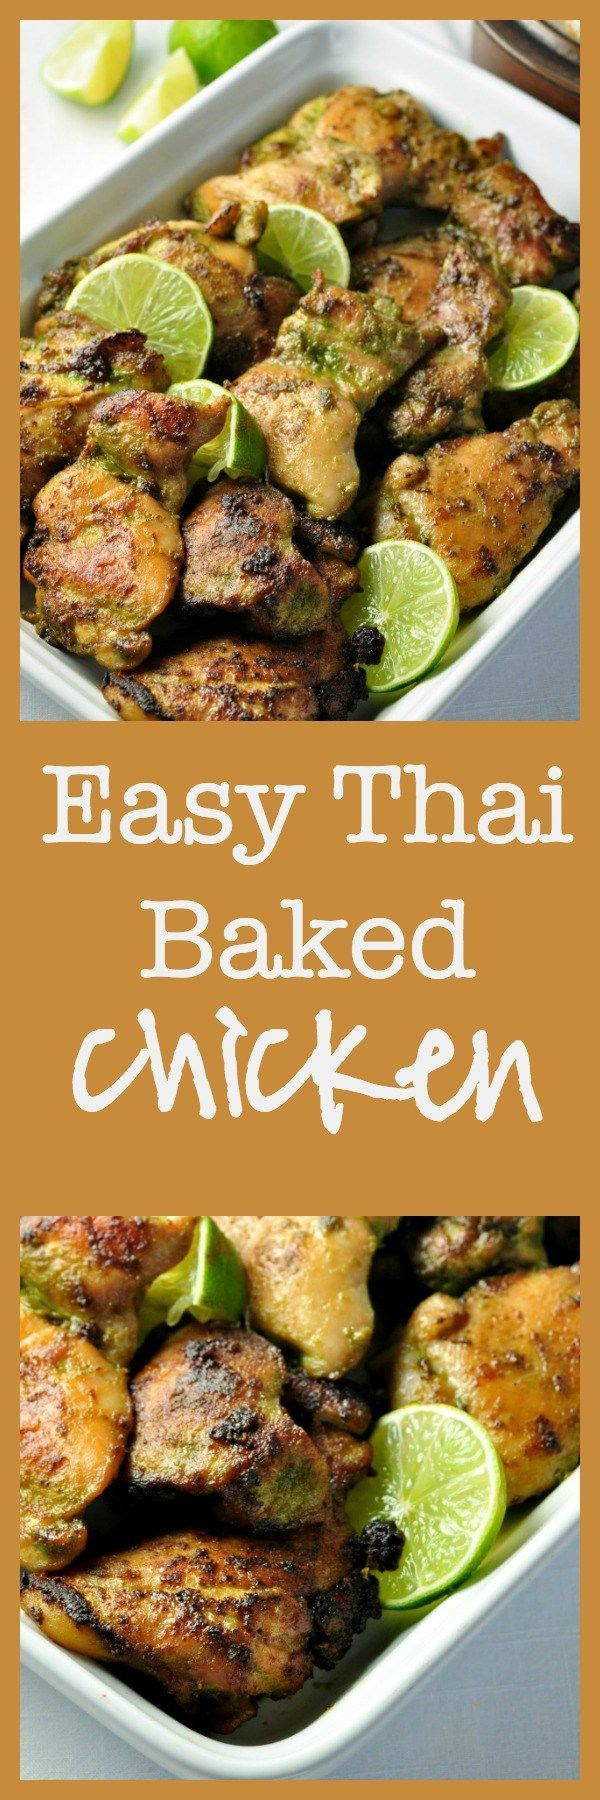 Easy Thai Baked Chicken. An easy make-ahead meal for busy nights. Cilantro, jalapeño, ginger, basil, garlic and coriander all play together to produce this aromatic, slightly spicy chicken dish that leaves you wanting more.